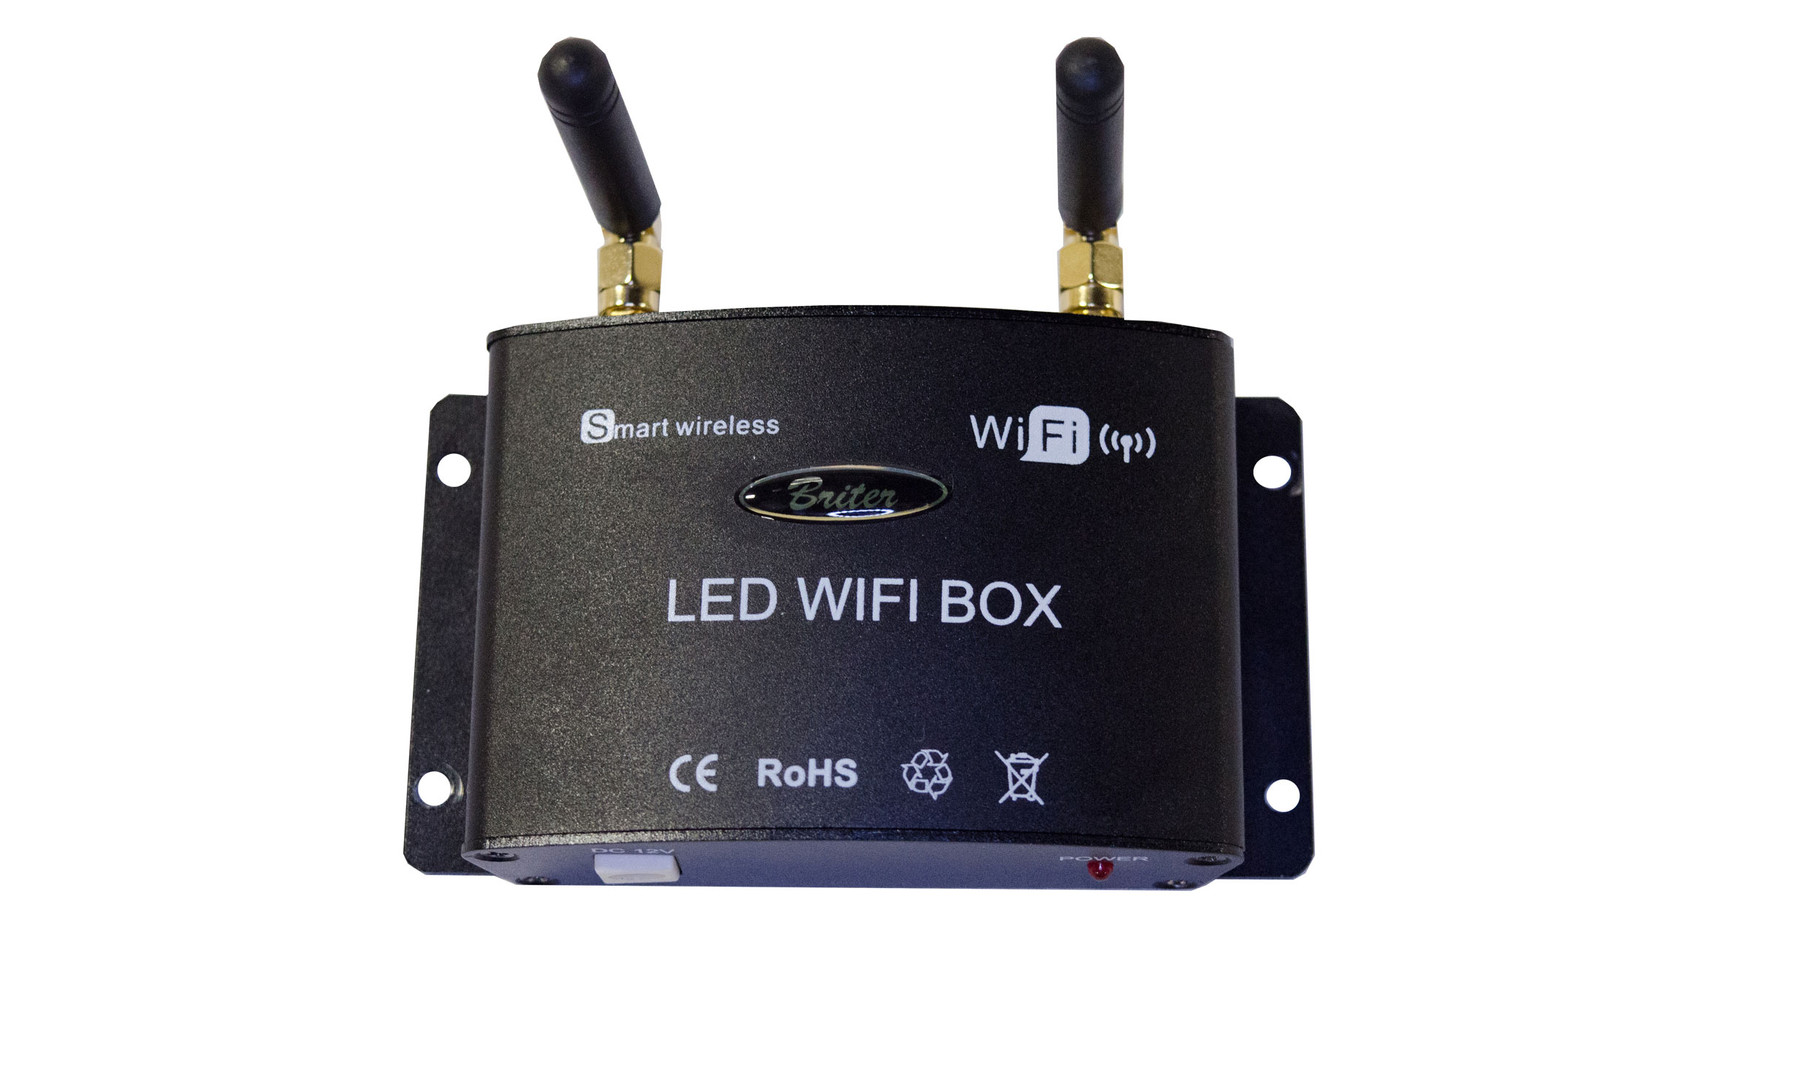 LED WiFi Router Top View